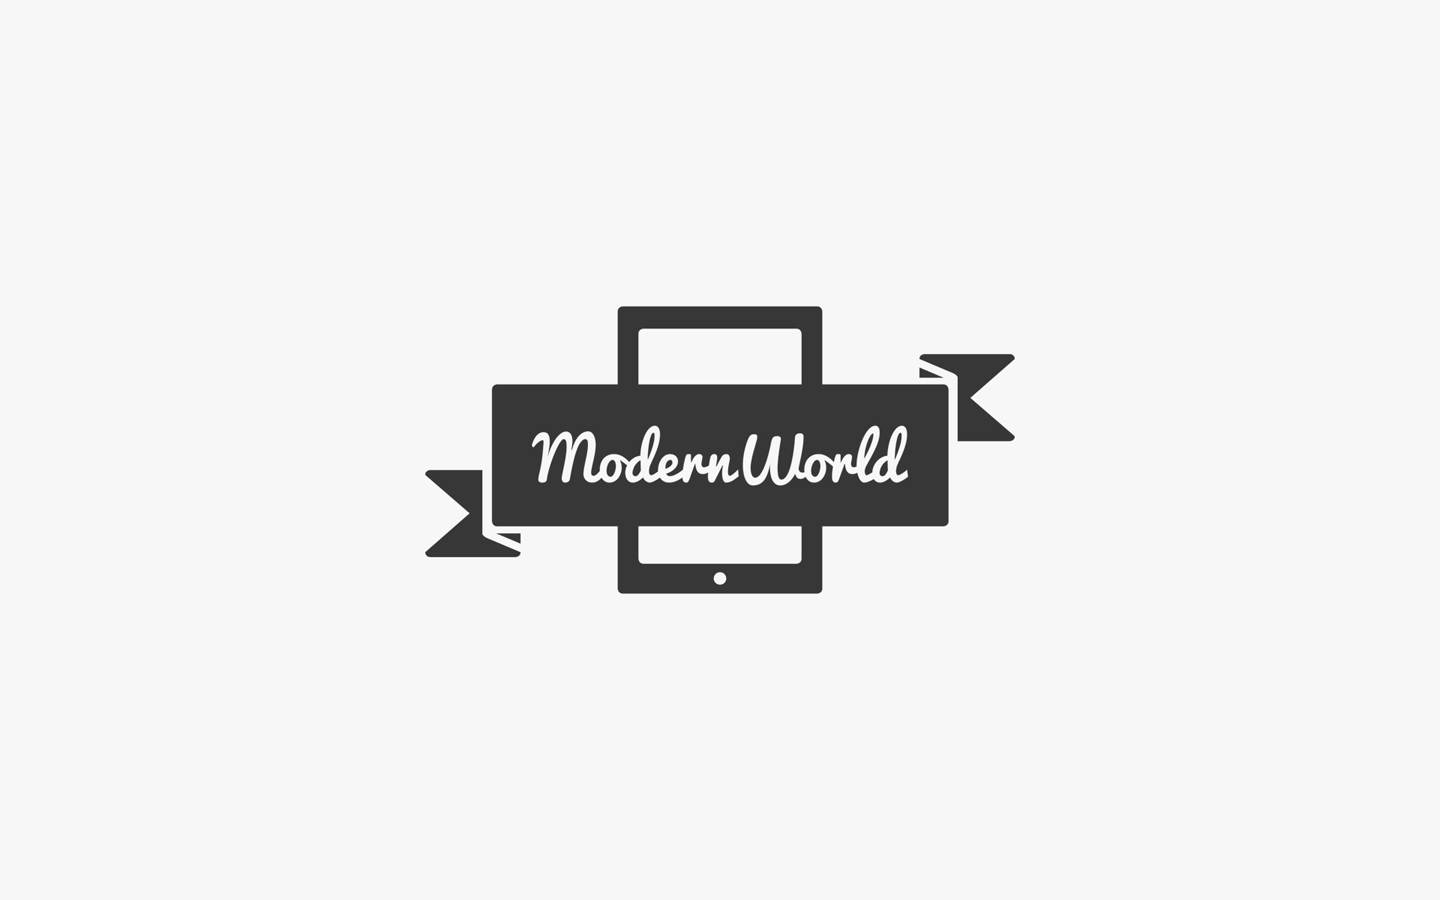 Modern World Illustrations, Logo Design in Mono